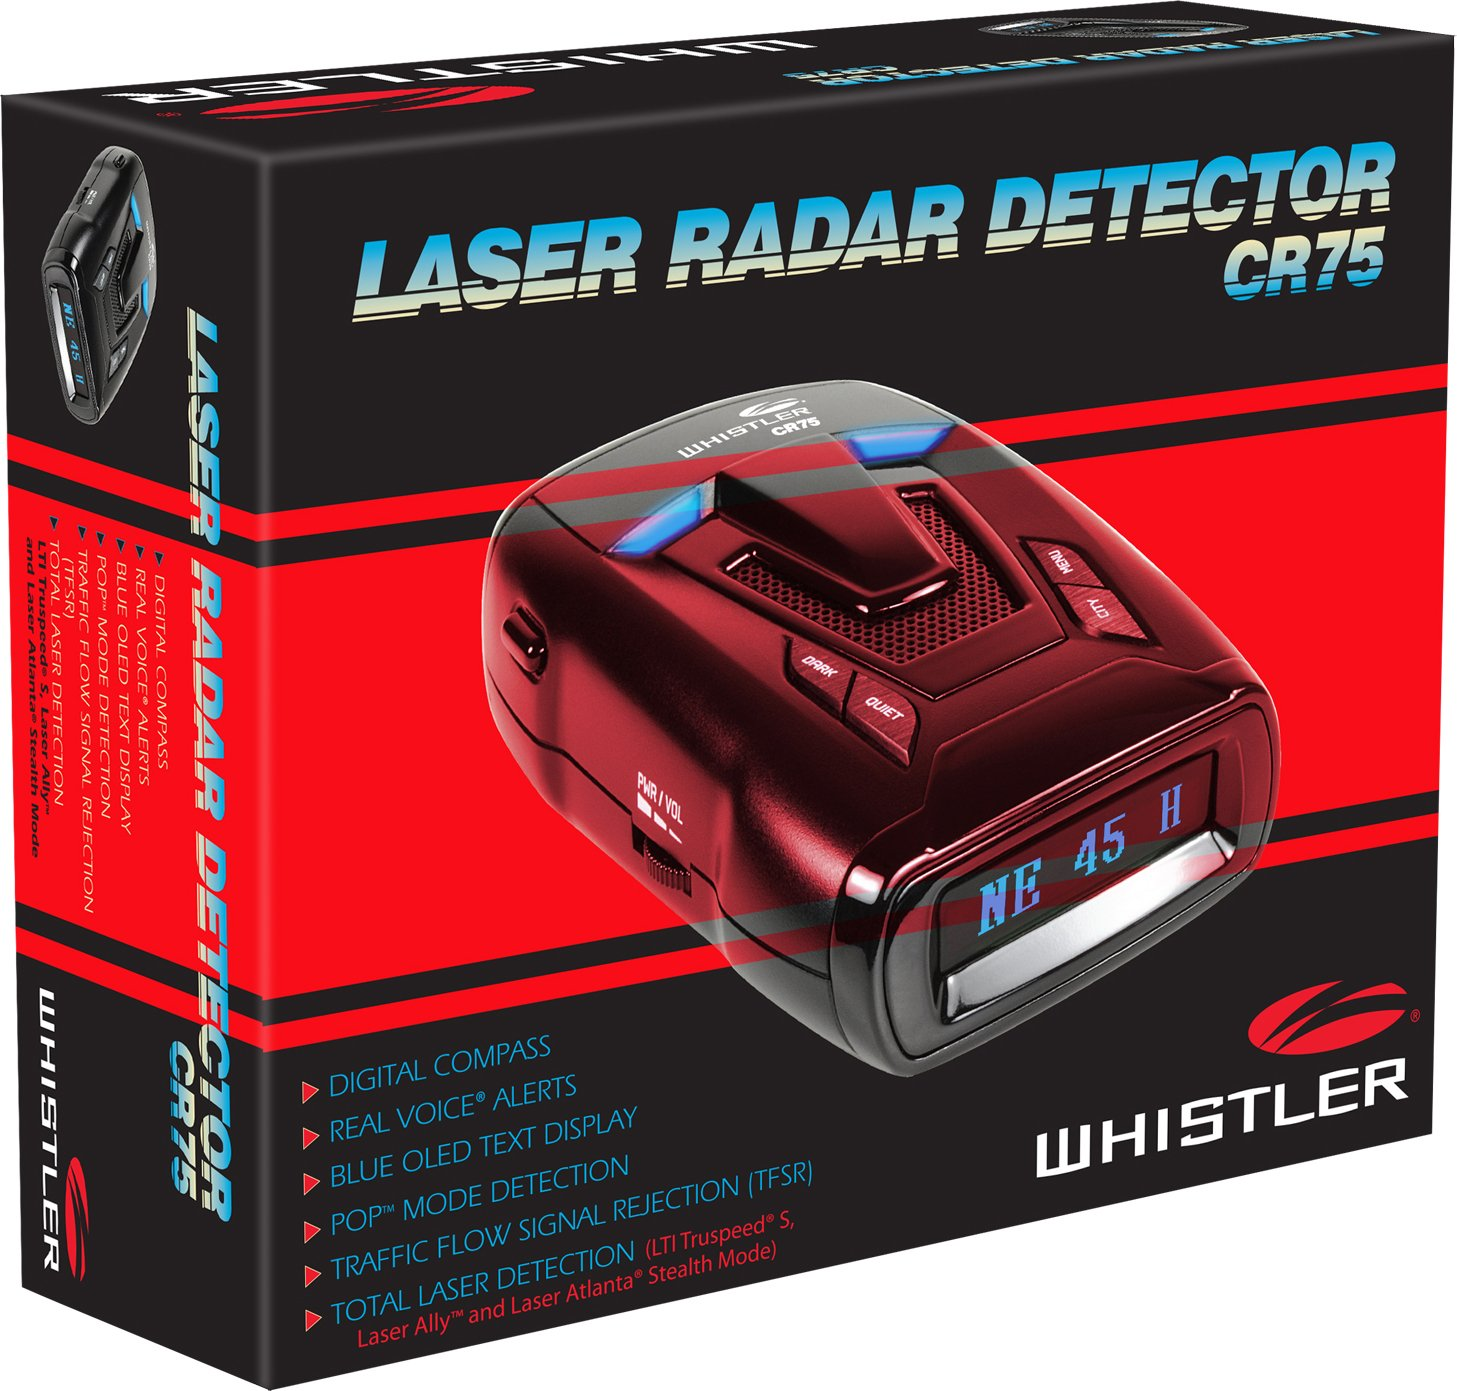 360 Degree Protection and Voice Alerts Whistler CR80 High Performance Laser Radar Detector